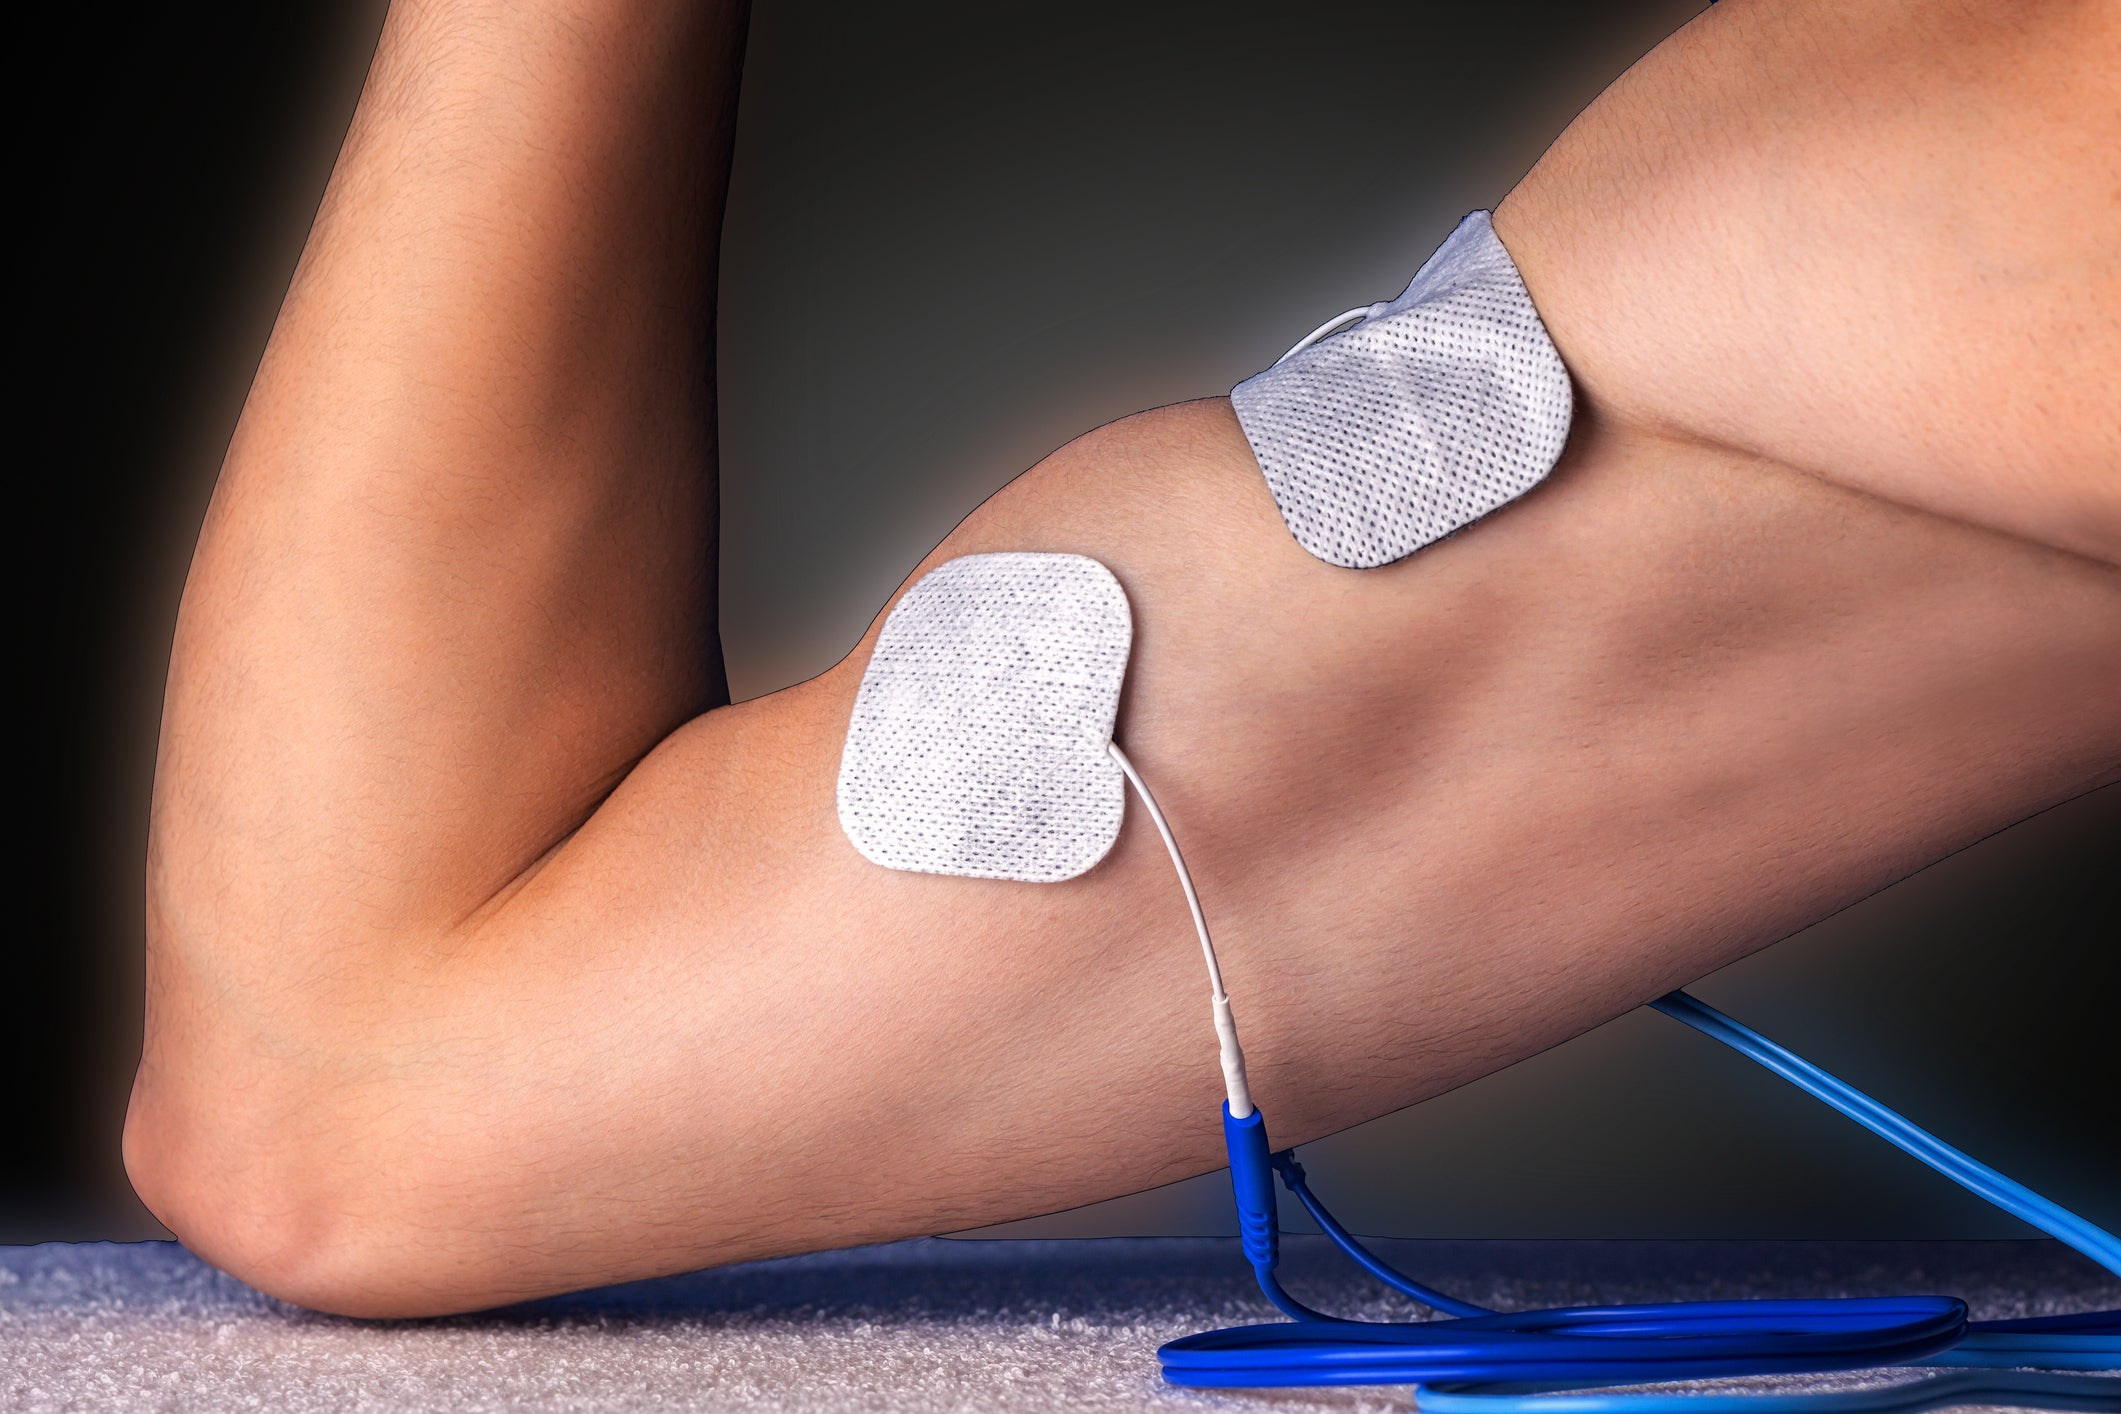 How to Get Fit Using Electrical Muscle Stimulation (EMS) - Scientific  American